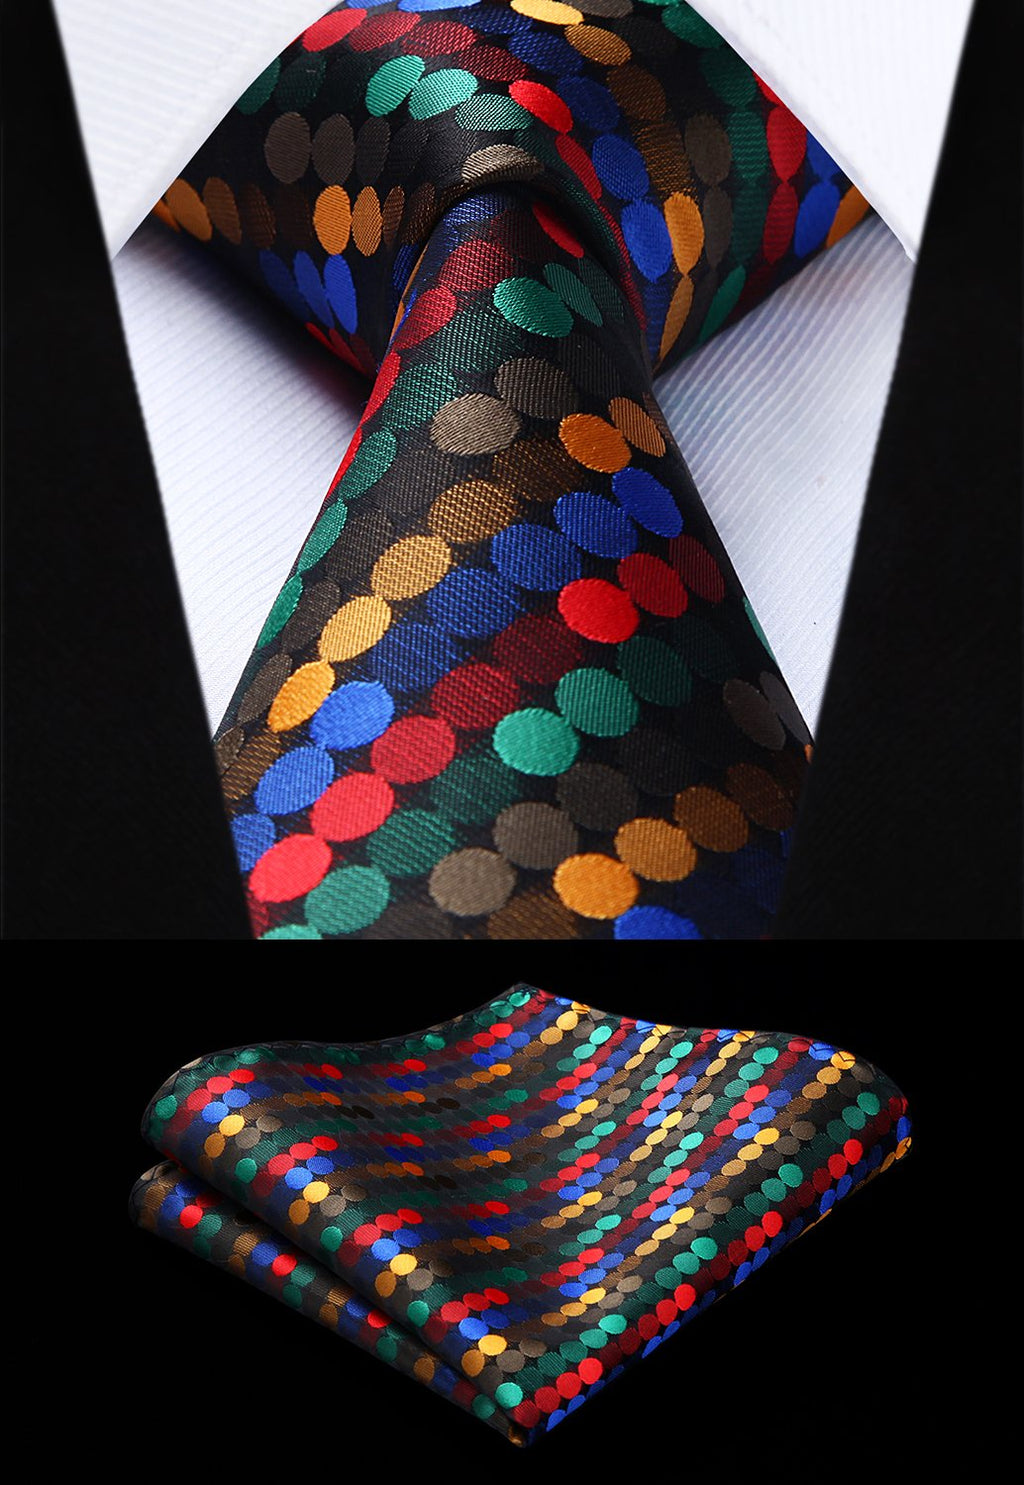 Woven Men Colorful Tie Red Polka Dot Necktie Handkerchief Set#TD803M18S Party Weddingmodkily-modkily